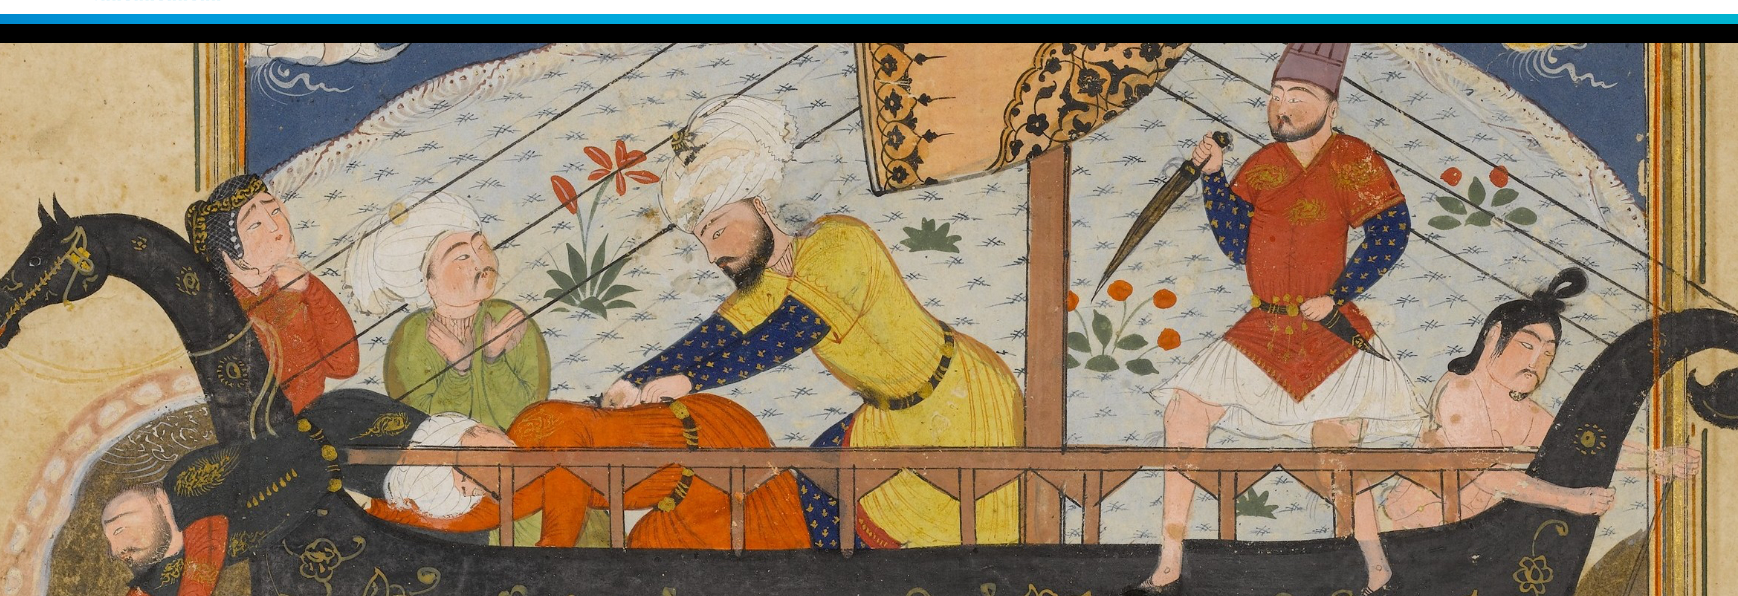 The Seas and the Mobility of Islamic Art